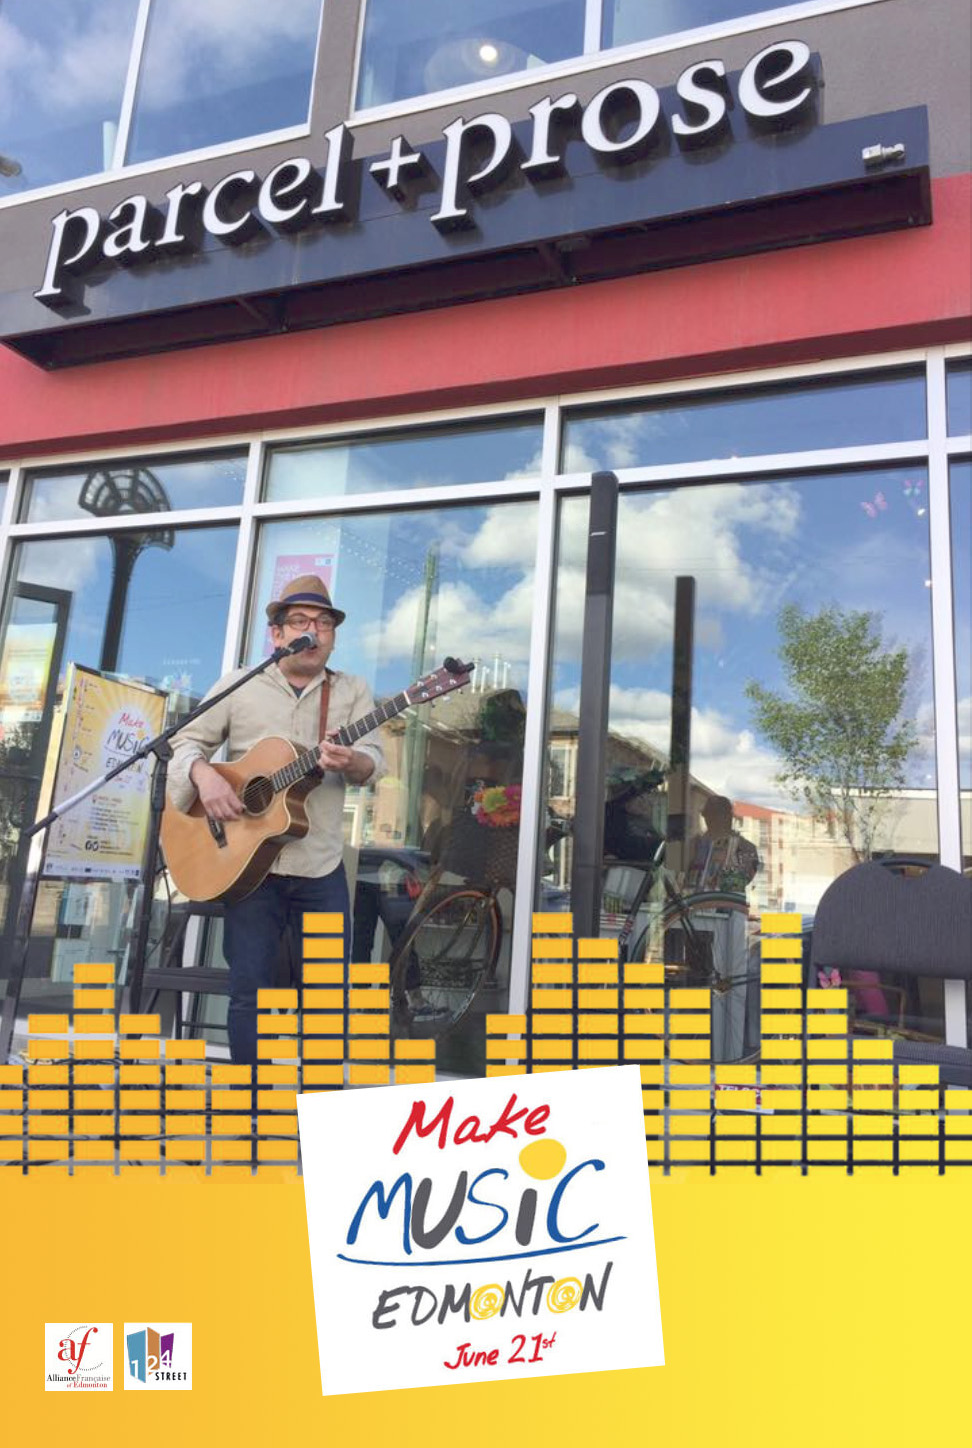 Local Musician Ben Sures performs in front of parcel + prose at the Make Music Festival 2017